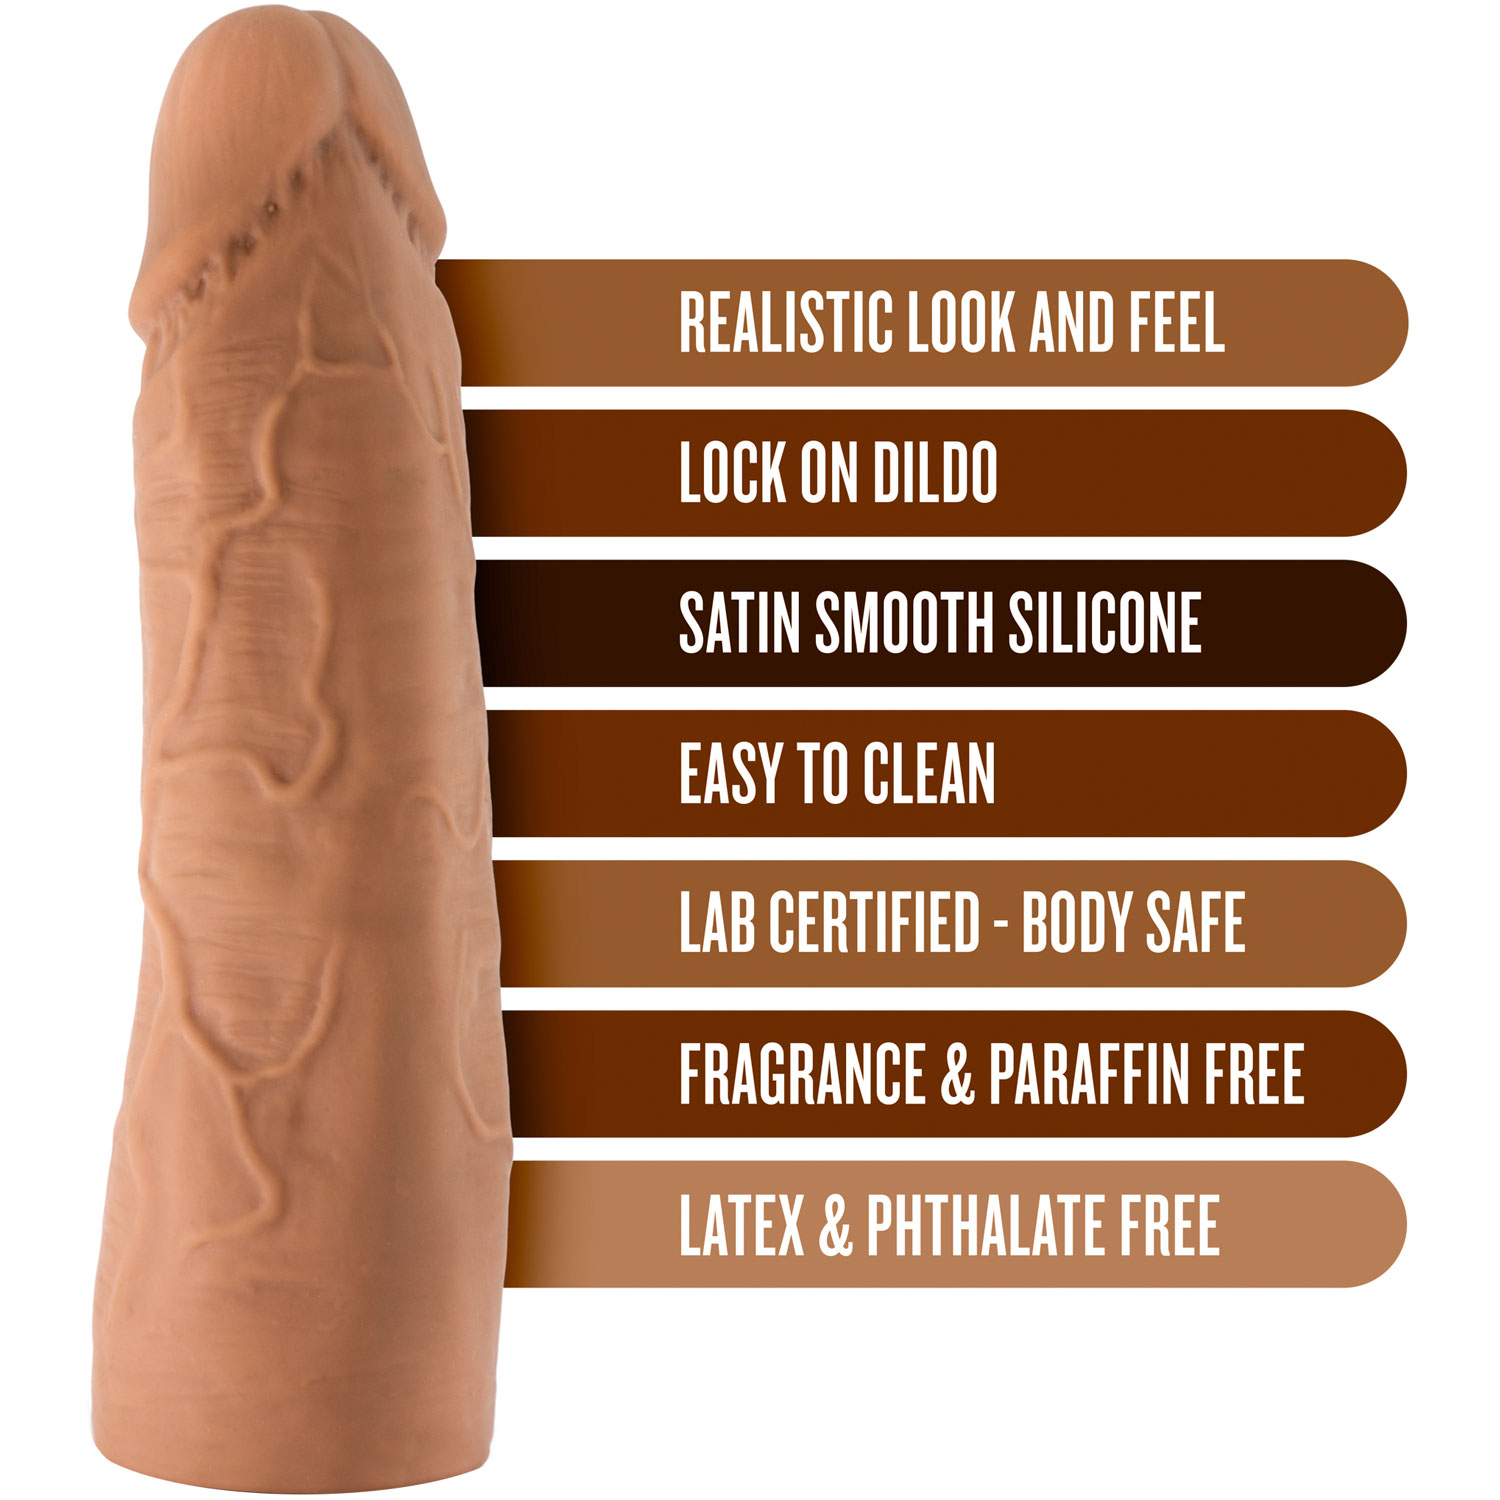 The Realm Realistic 7 Inch Silicone Lock On Dildo - Features